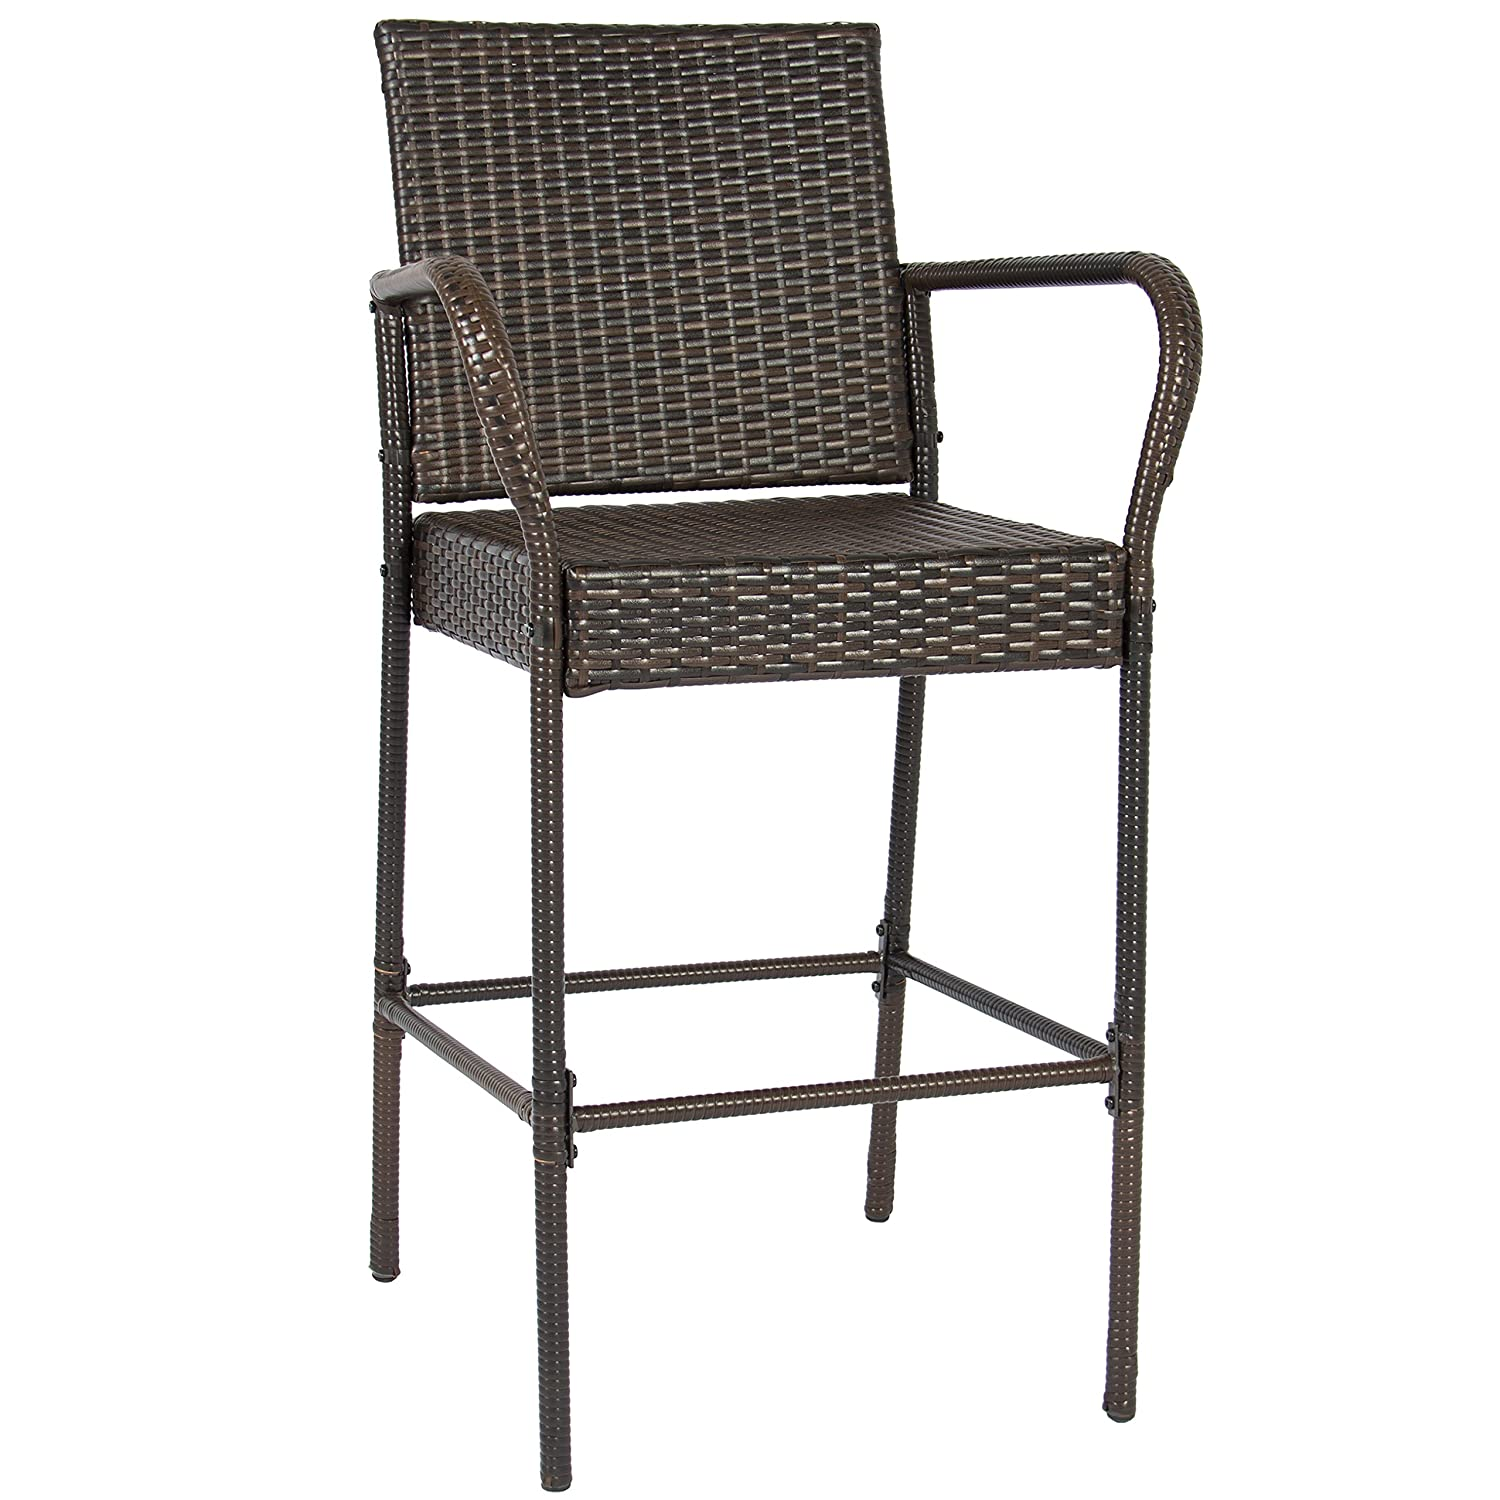 furniture amisco sunbrella from counter of bistro keaton stools french stool dining chairs wonderful size inexpensive innovation full sydney ideas barstool navy design palecek outdoor rattan tall bar shop patio dear walnut wicker height and swivel table room wood sale white woven